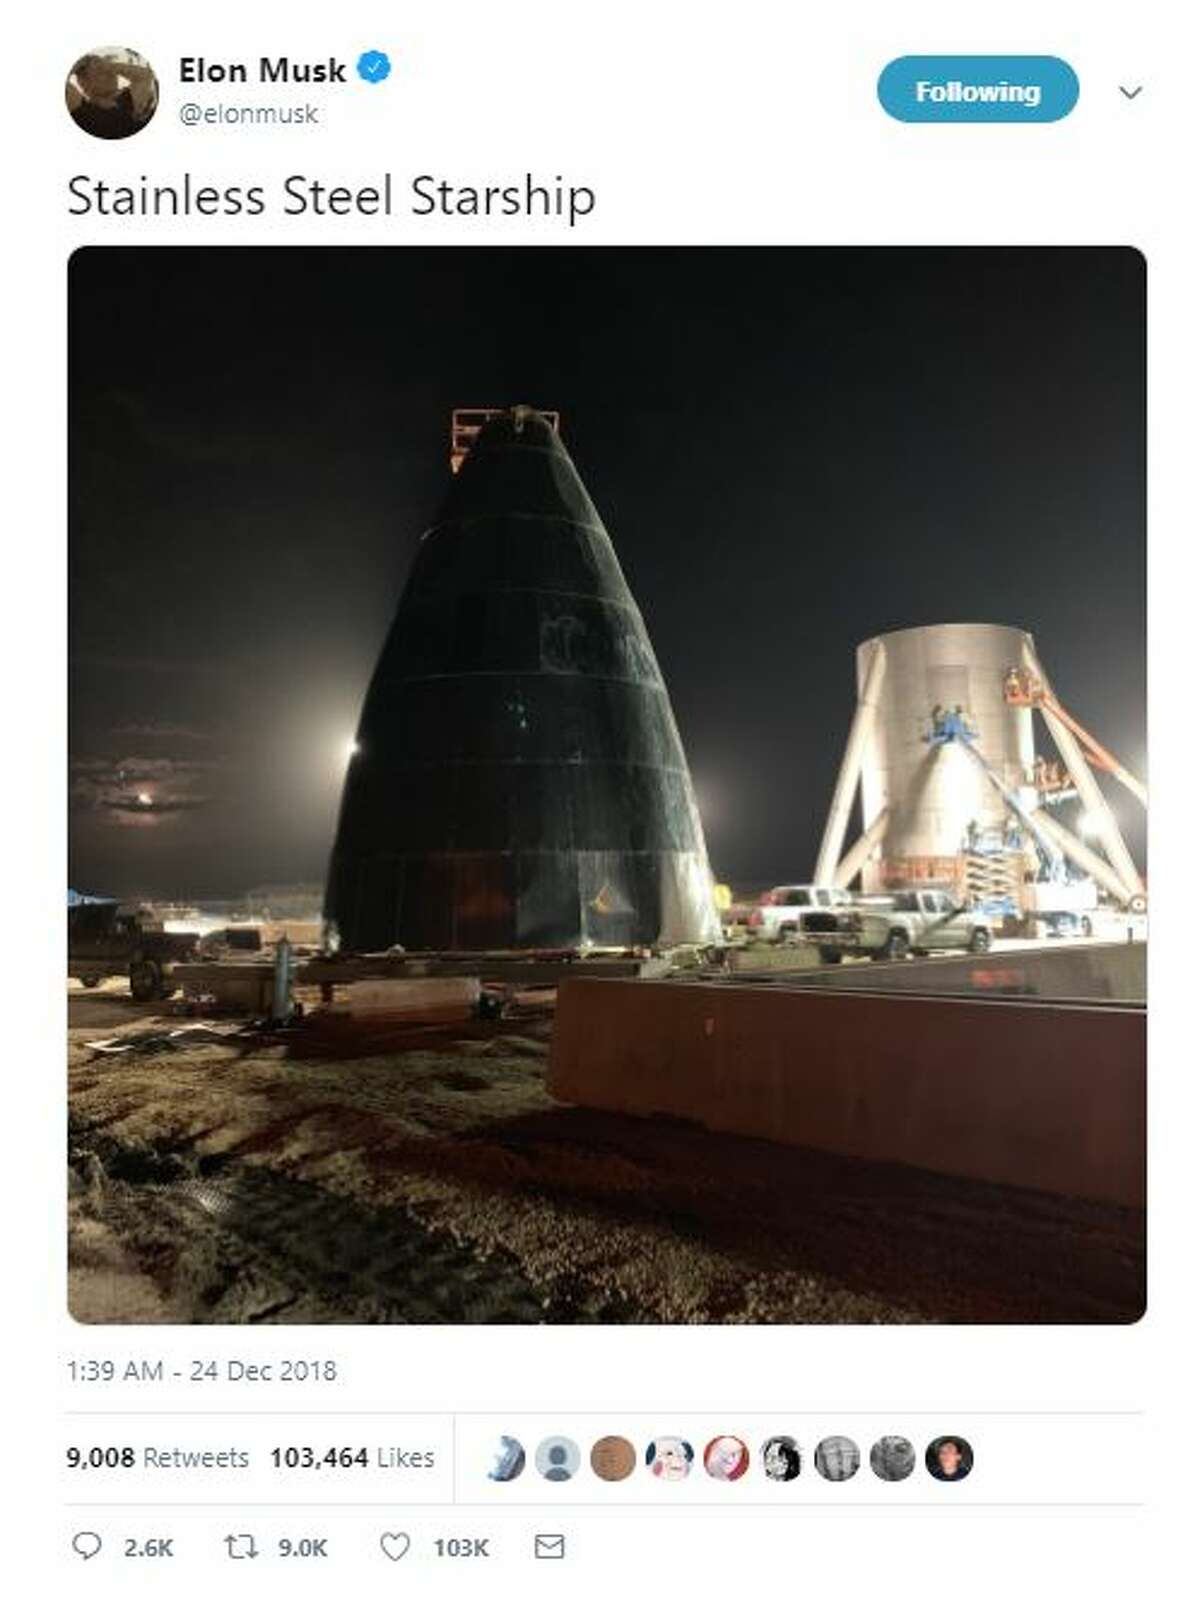 Musk's Twitter photo gives an indication of the scale of the prototype. Positioned next to a pickup truck, the nose cone appears to be multiple stories tall. Caption: